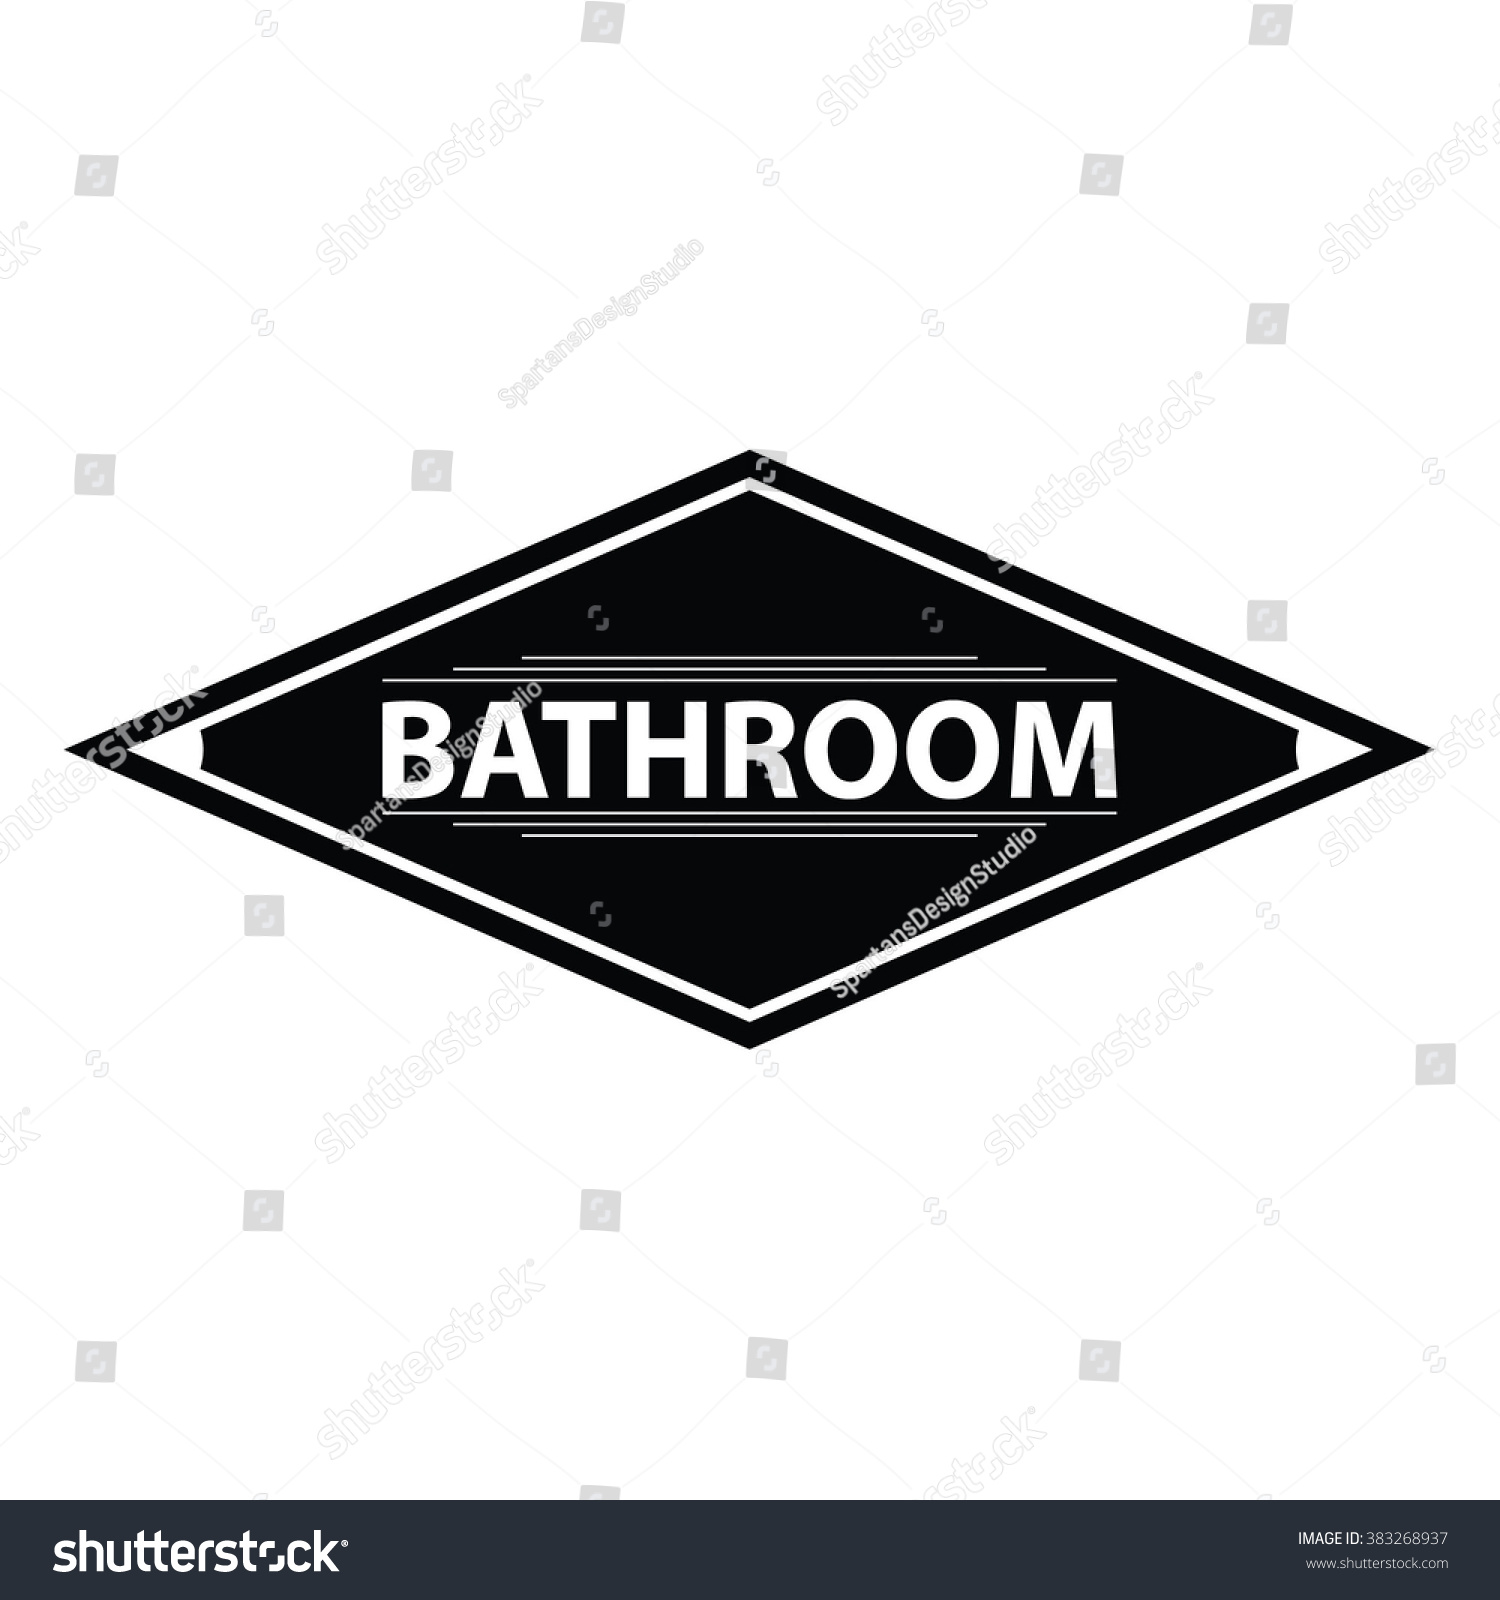 Toilet signs vector set stock images image 36323784 - Bathroom Signs Stock Vector 383268937 Shutterstock Stock Vector Bathroom Signs 383268937 Bathroom Signs 383268937